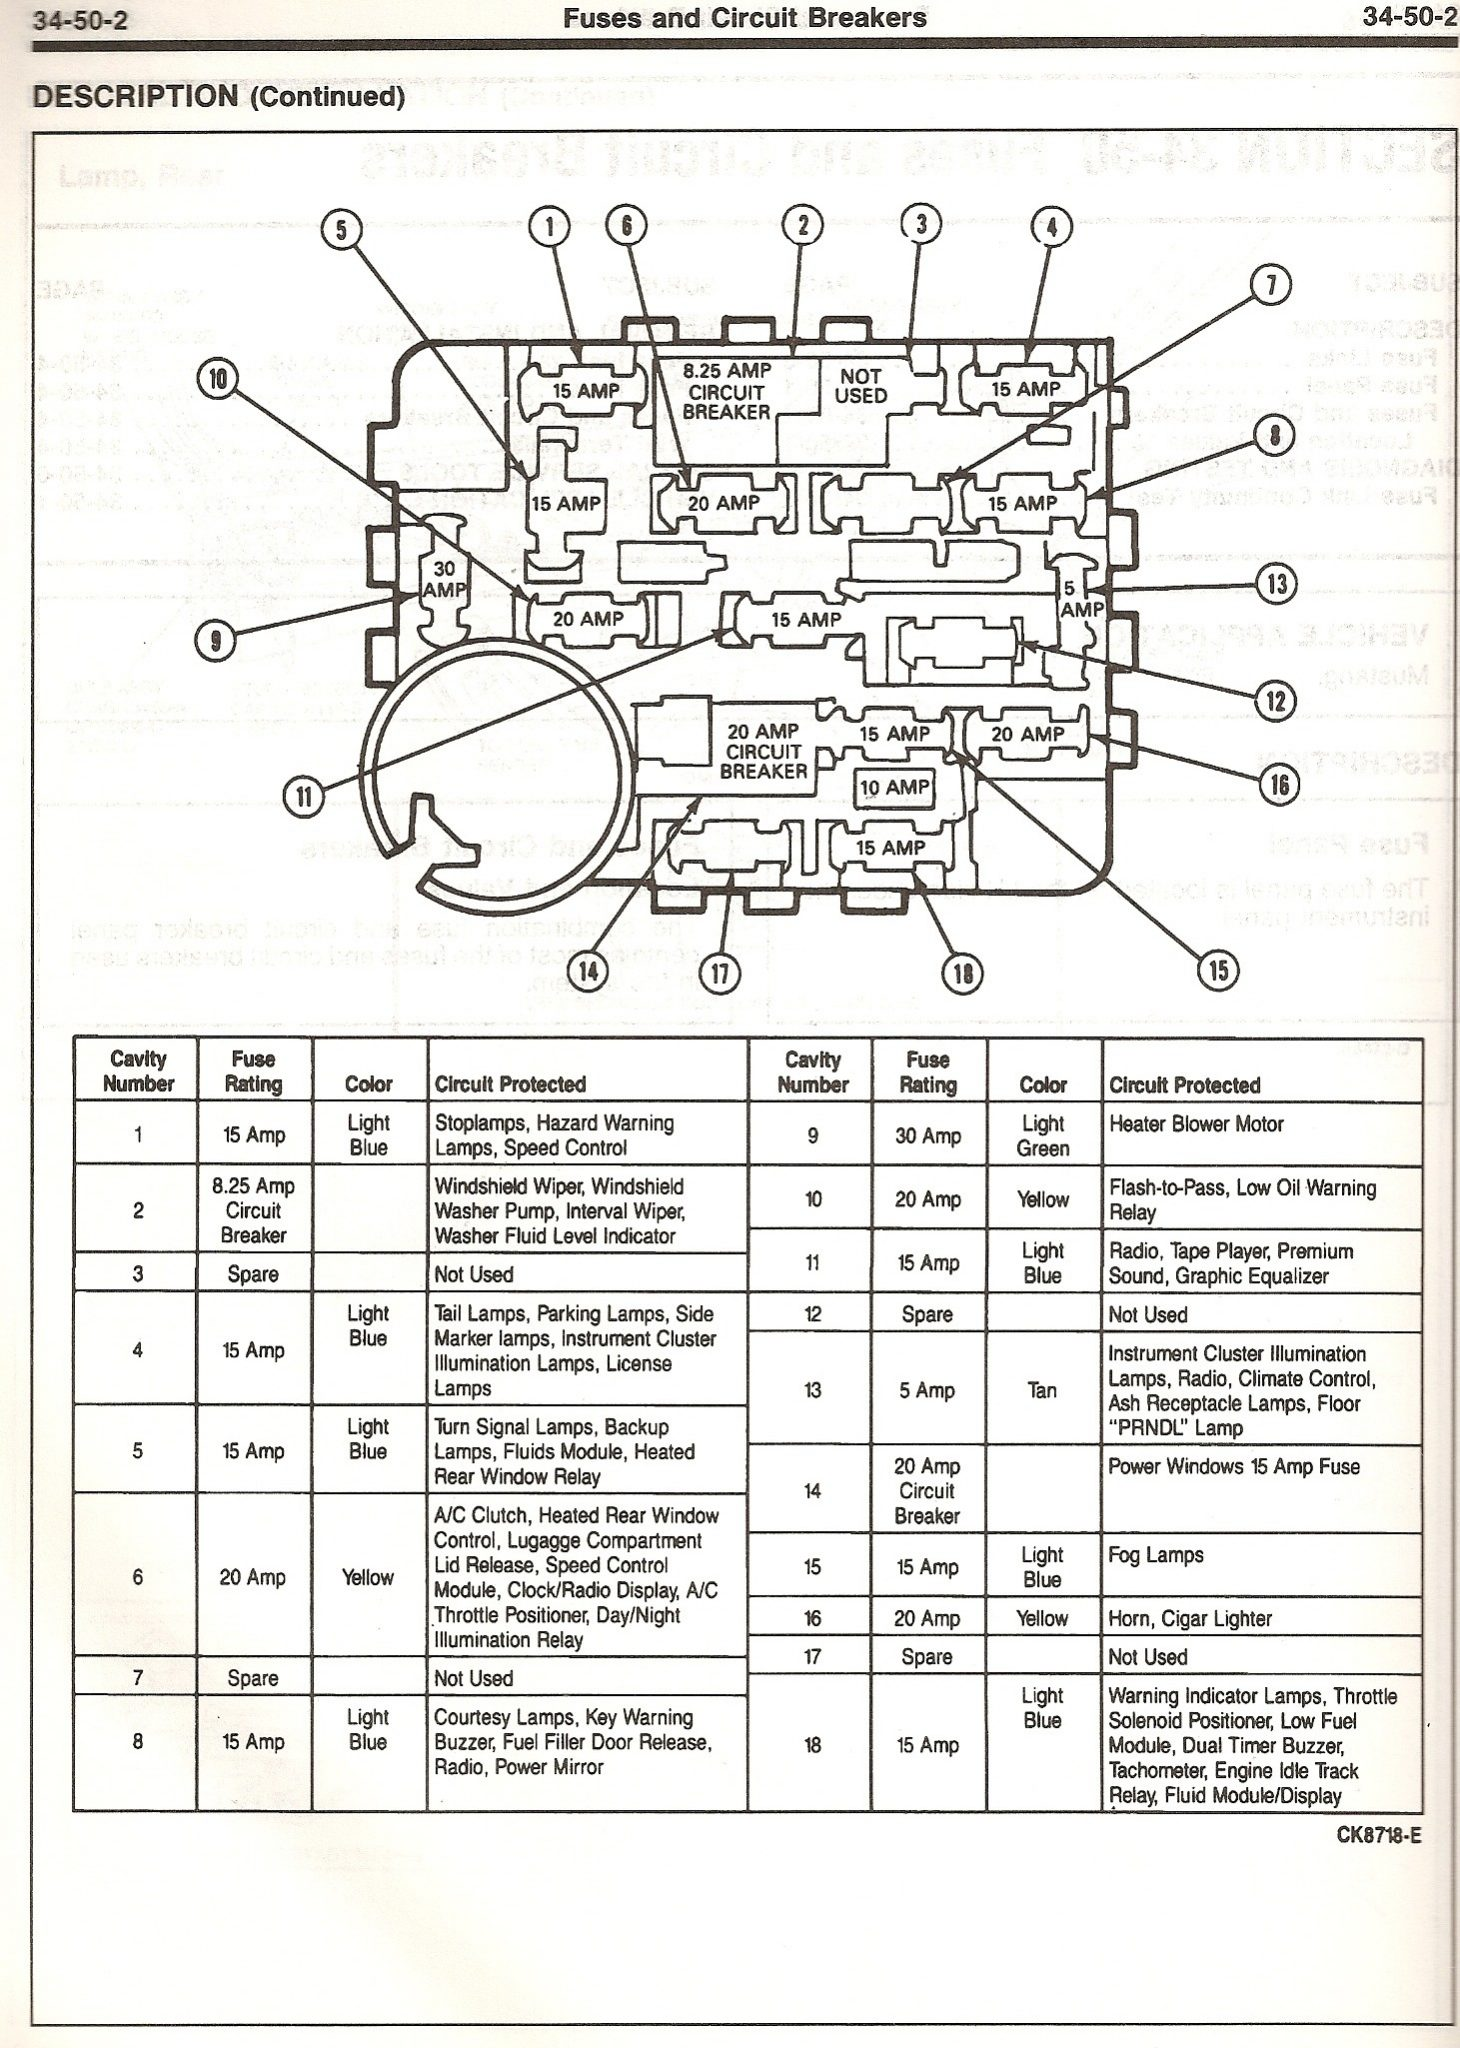 91 Mustang Fuse Box | Wiring Diagram on